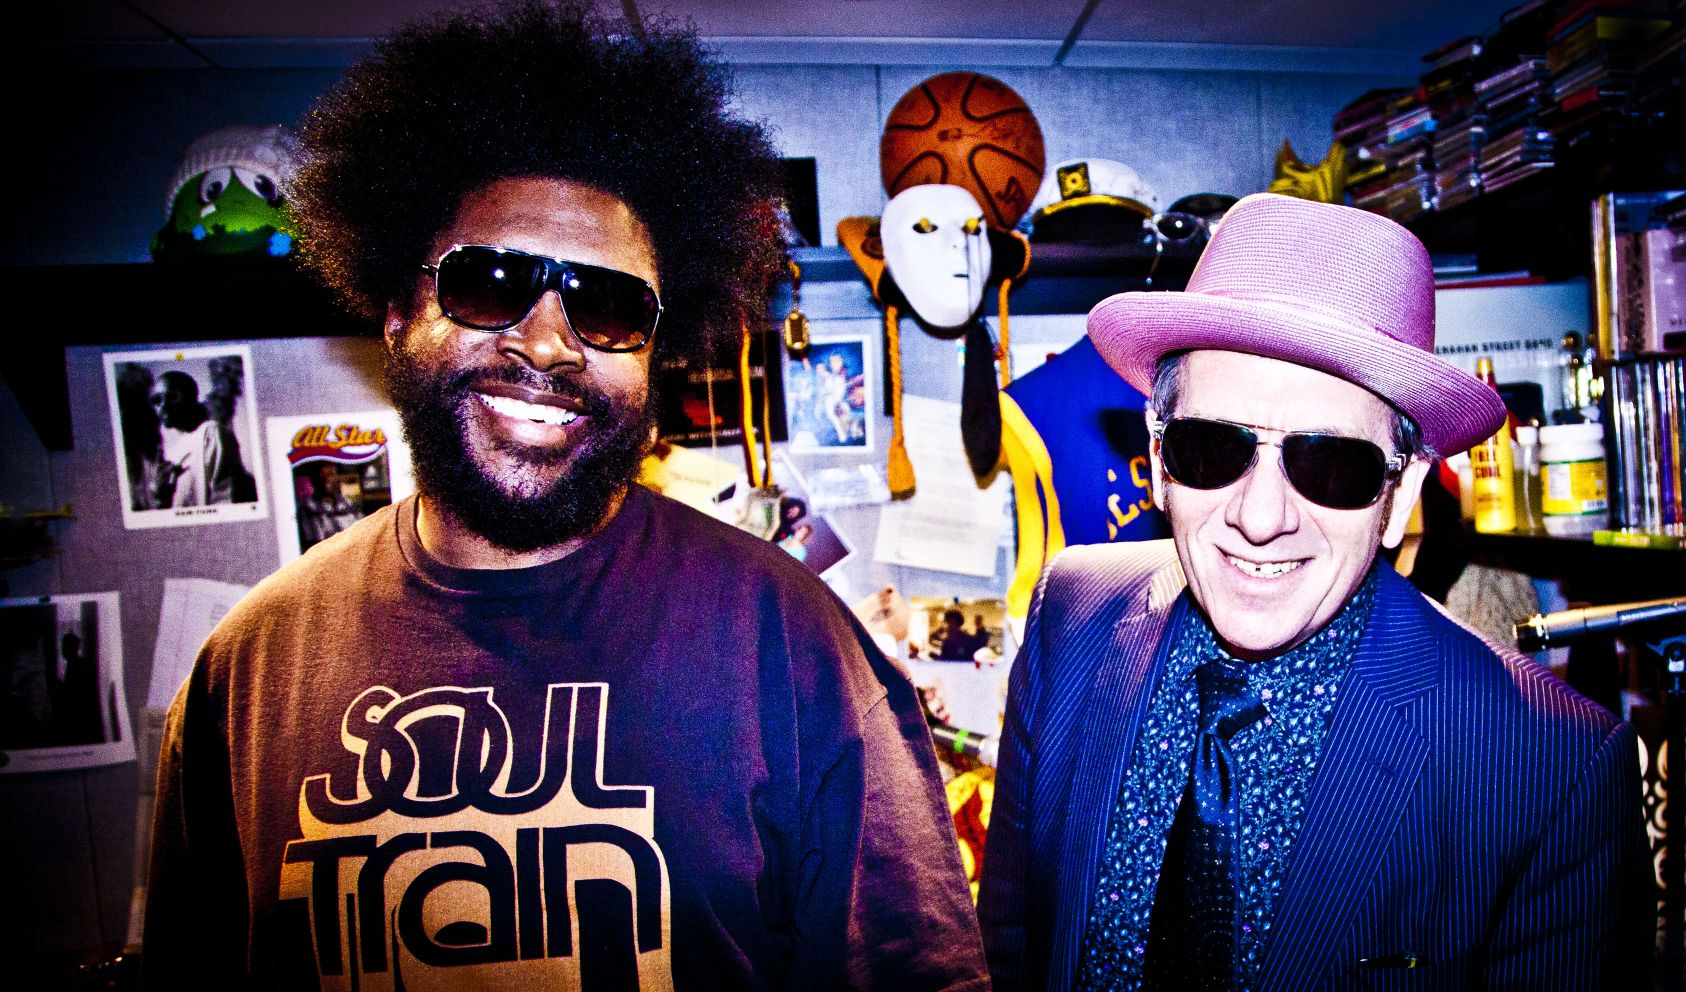 Elvis Costello the roots nuovo album 2013 wise up ghost